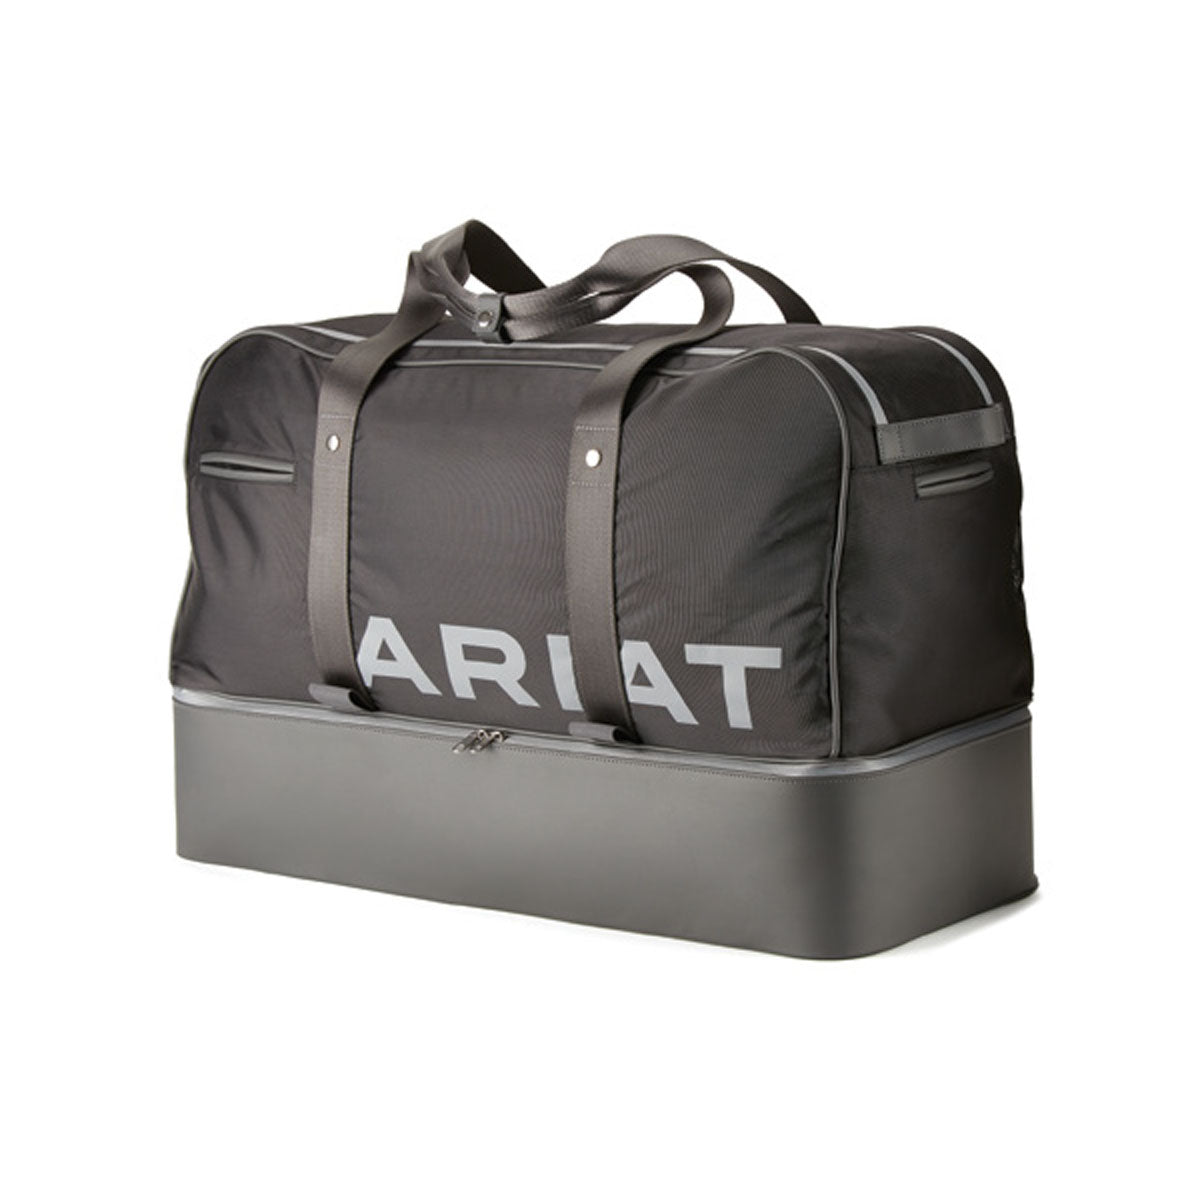 Ariat Grip Gear Bag